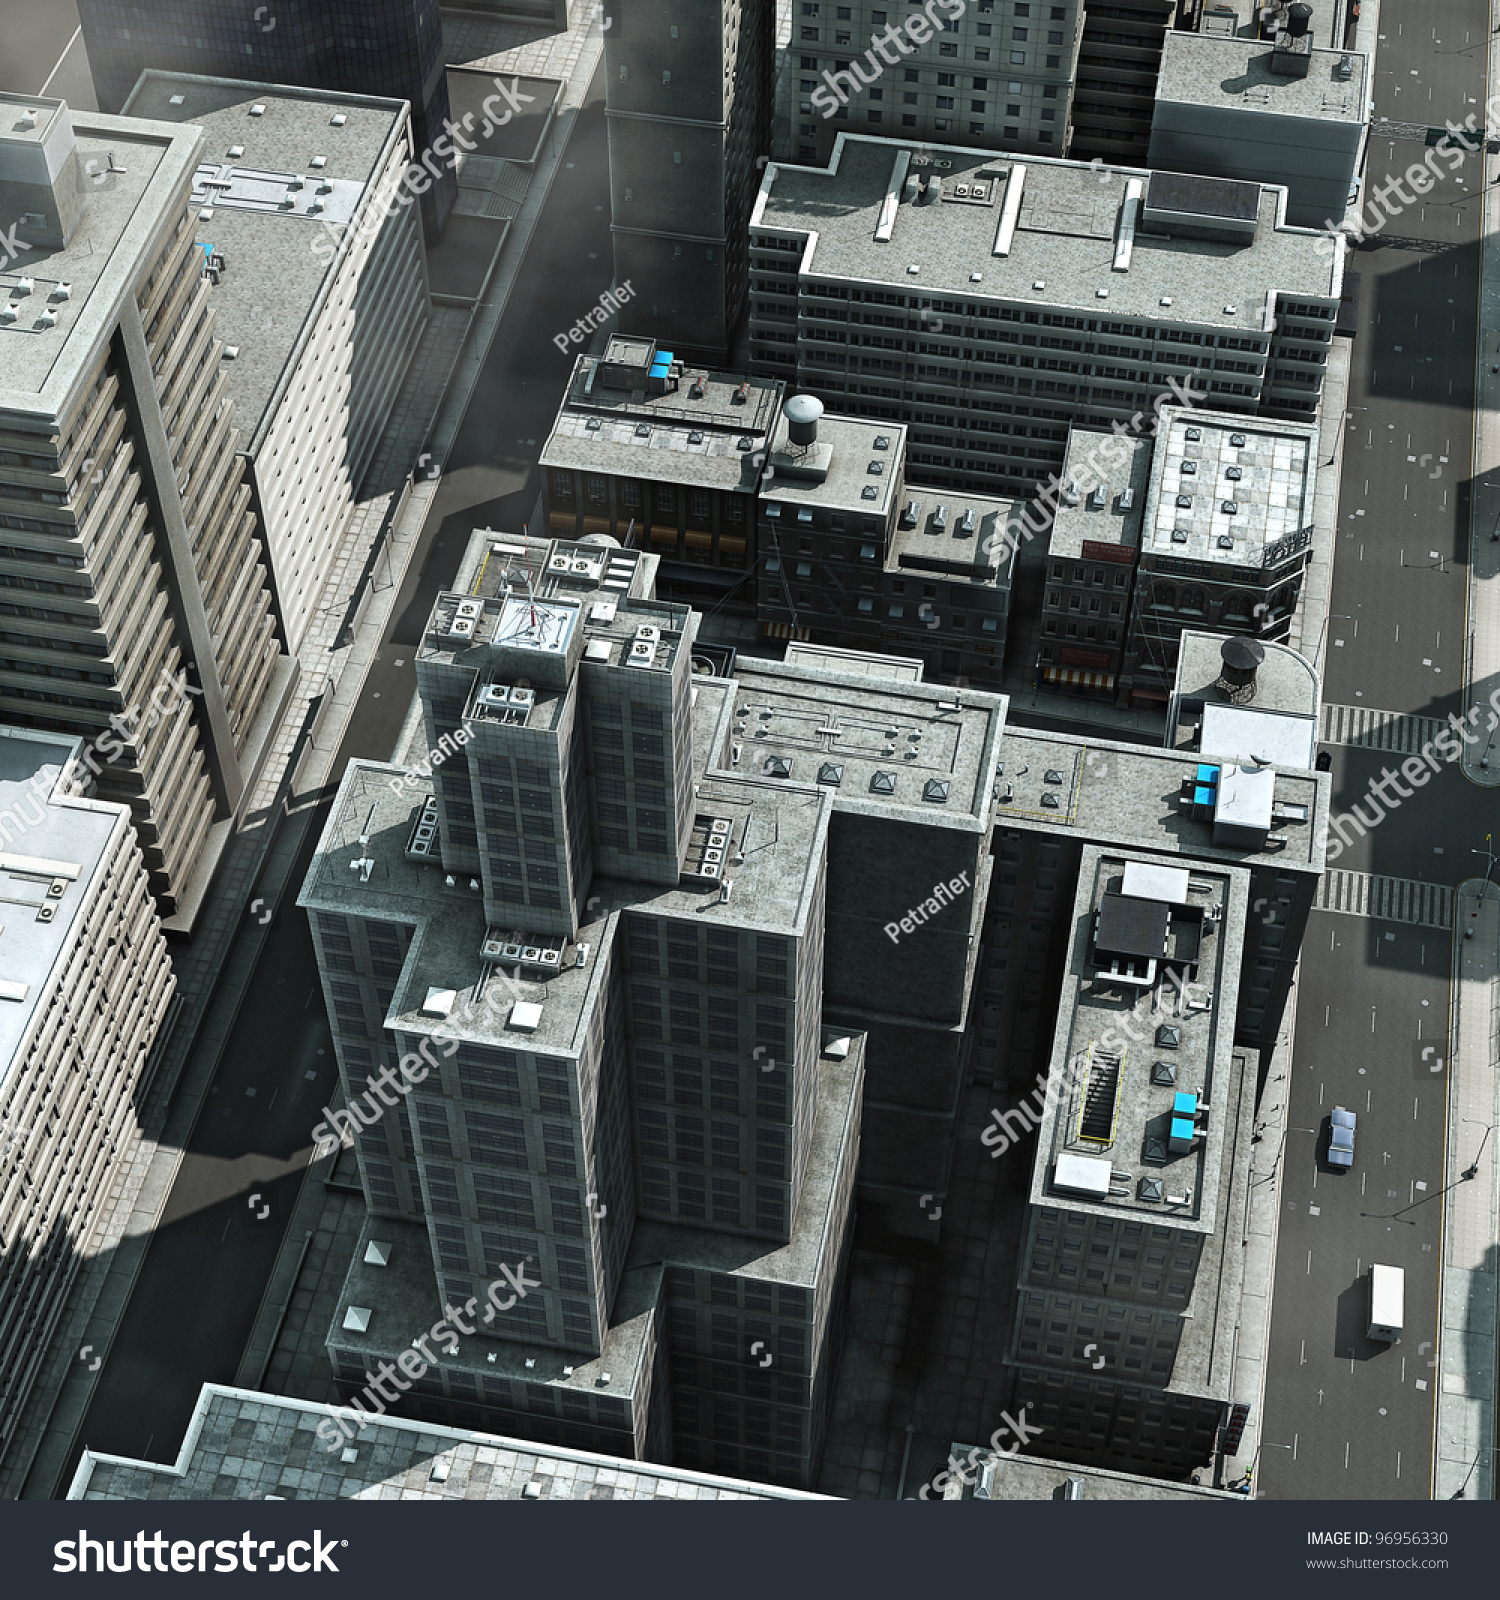 Urban View: Urban Rooftops, Aerial View Of A 3d City Render Stock